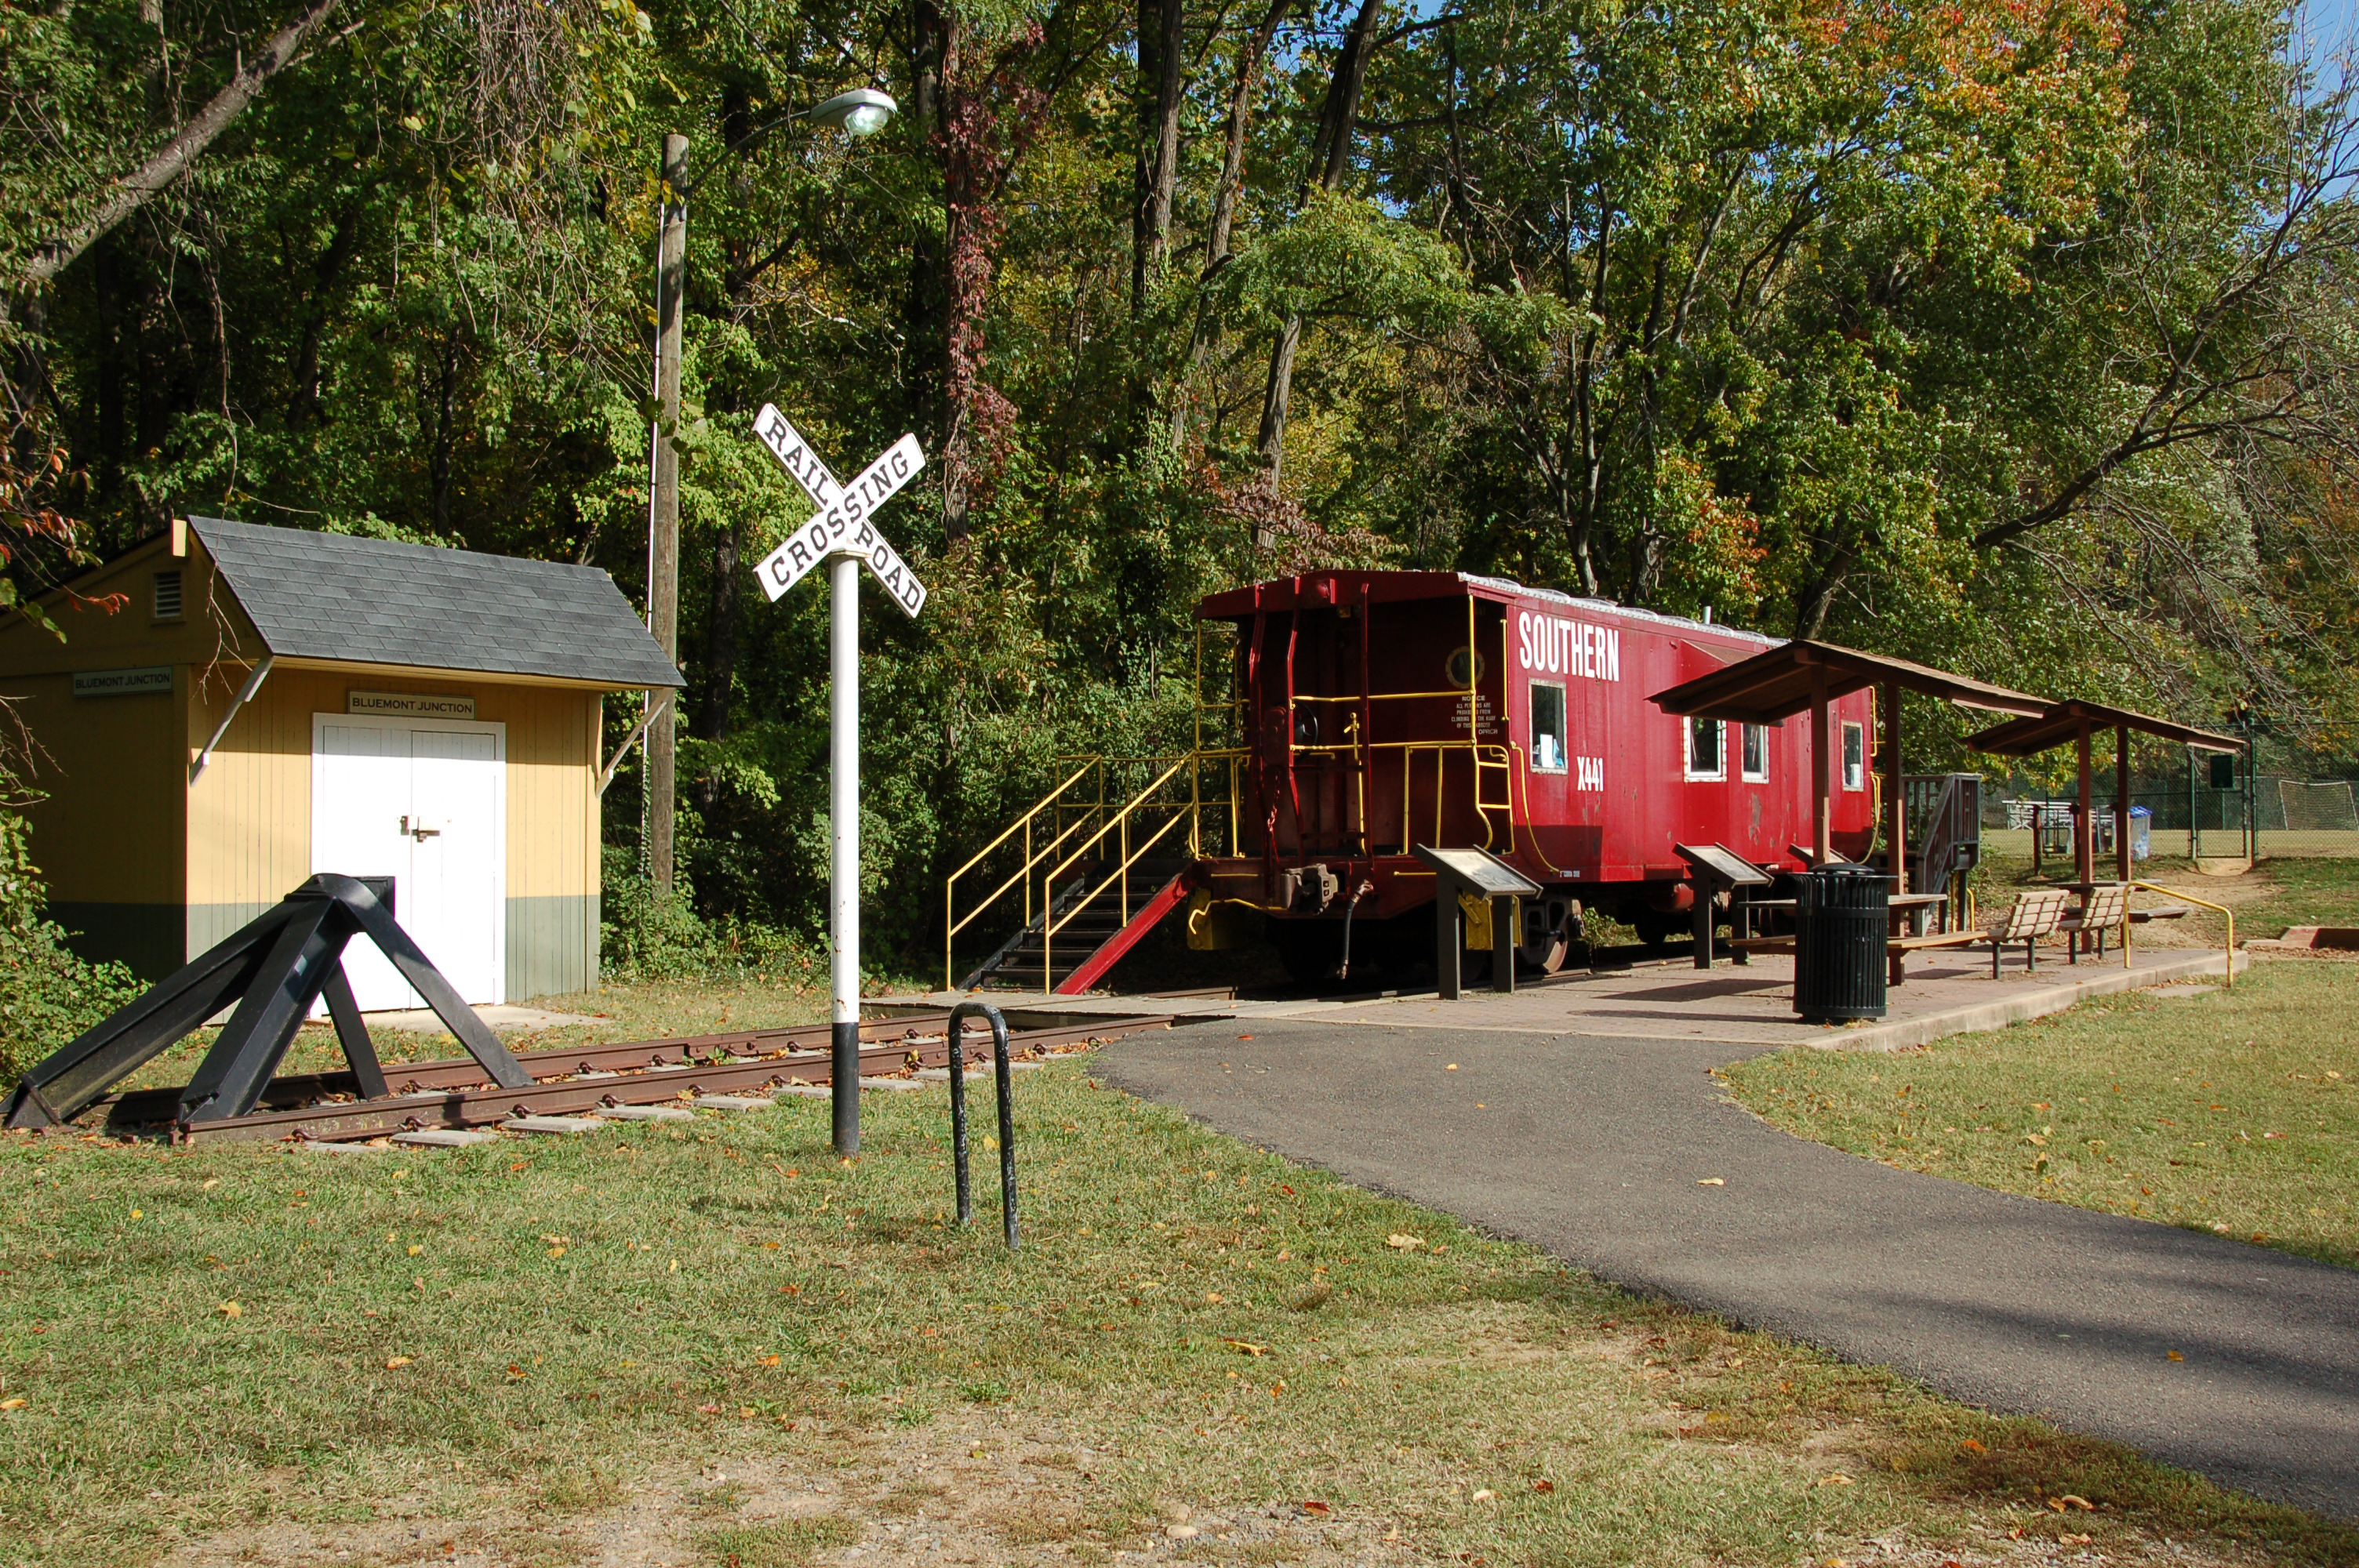 45 - Visit an old Southern Railway Caboose at Bluemont Junction